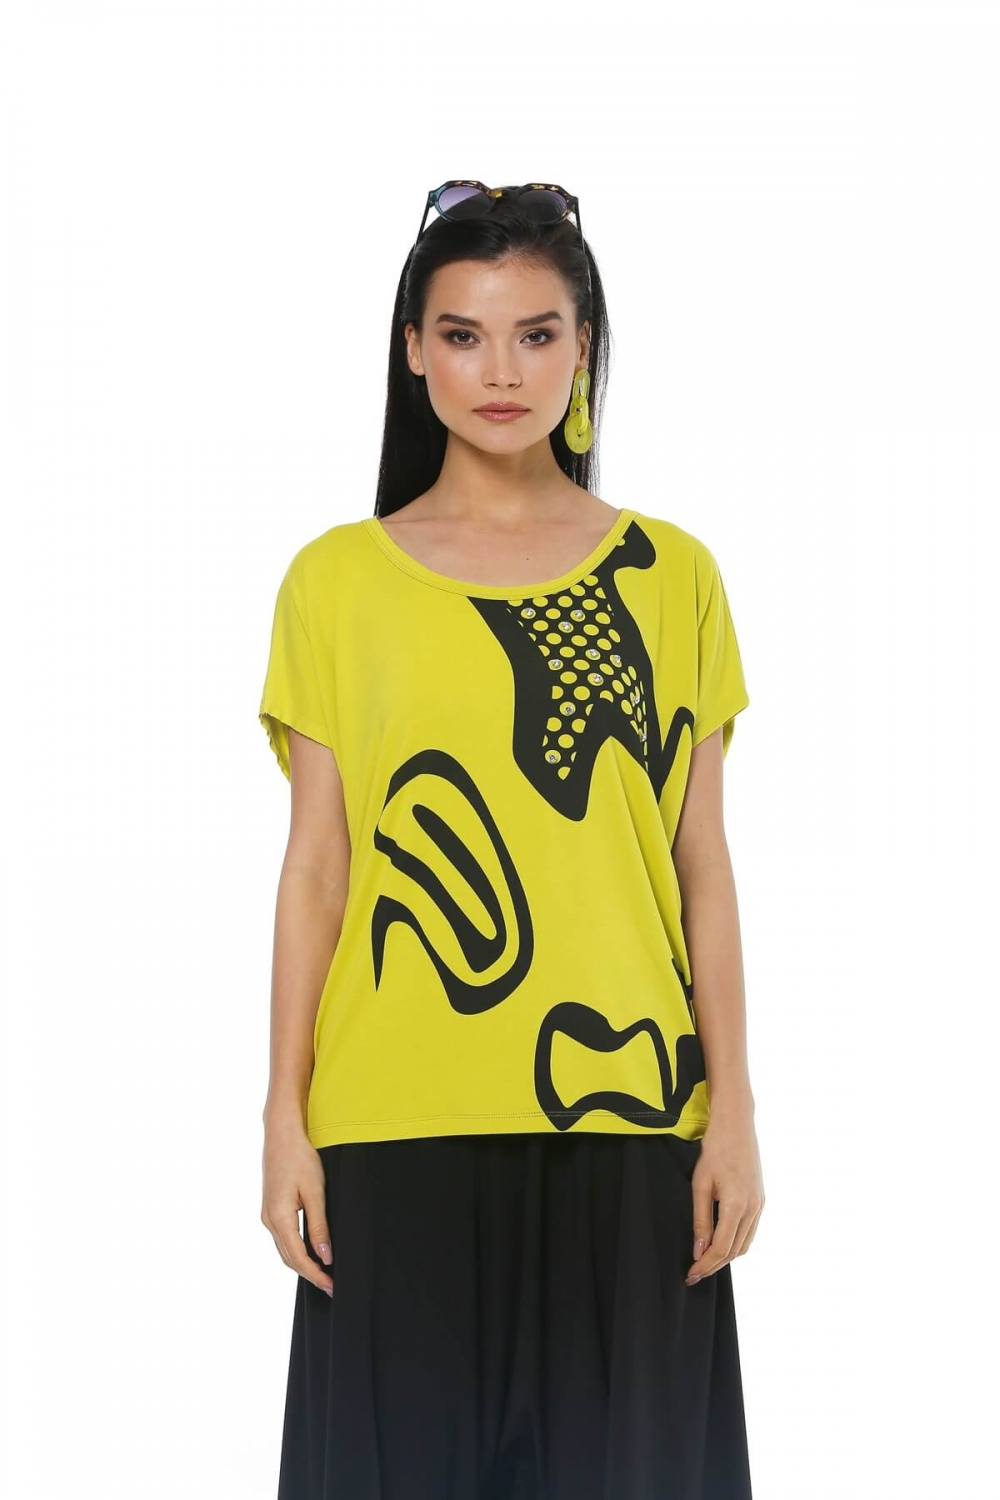 Accessory Detailed Blouse - Green